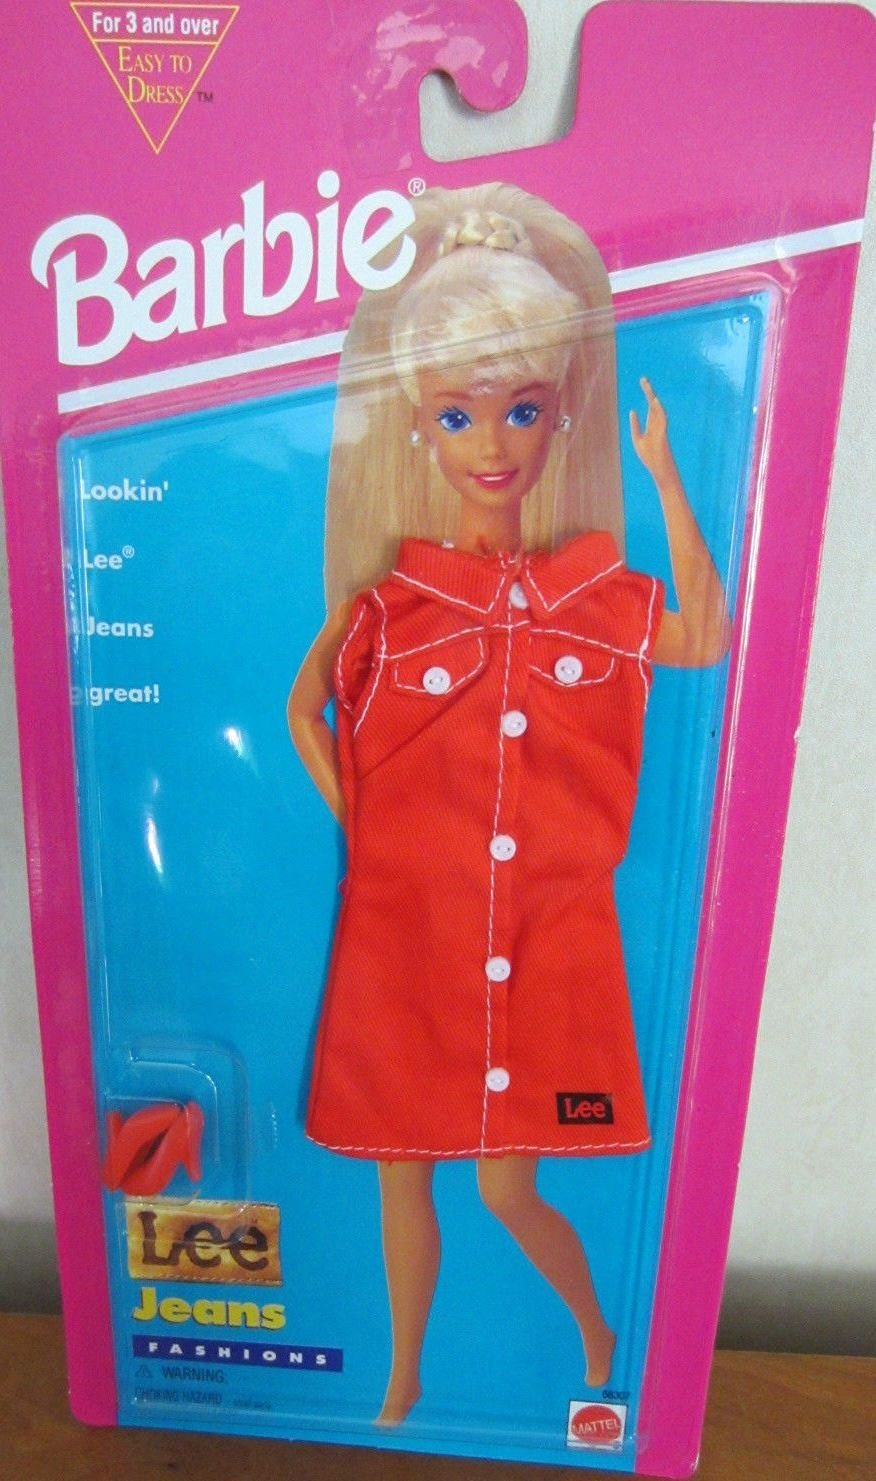 Barbie LEE Jeans Fashions - Easy To Dress (1995 Arcotoys, Mattel)